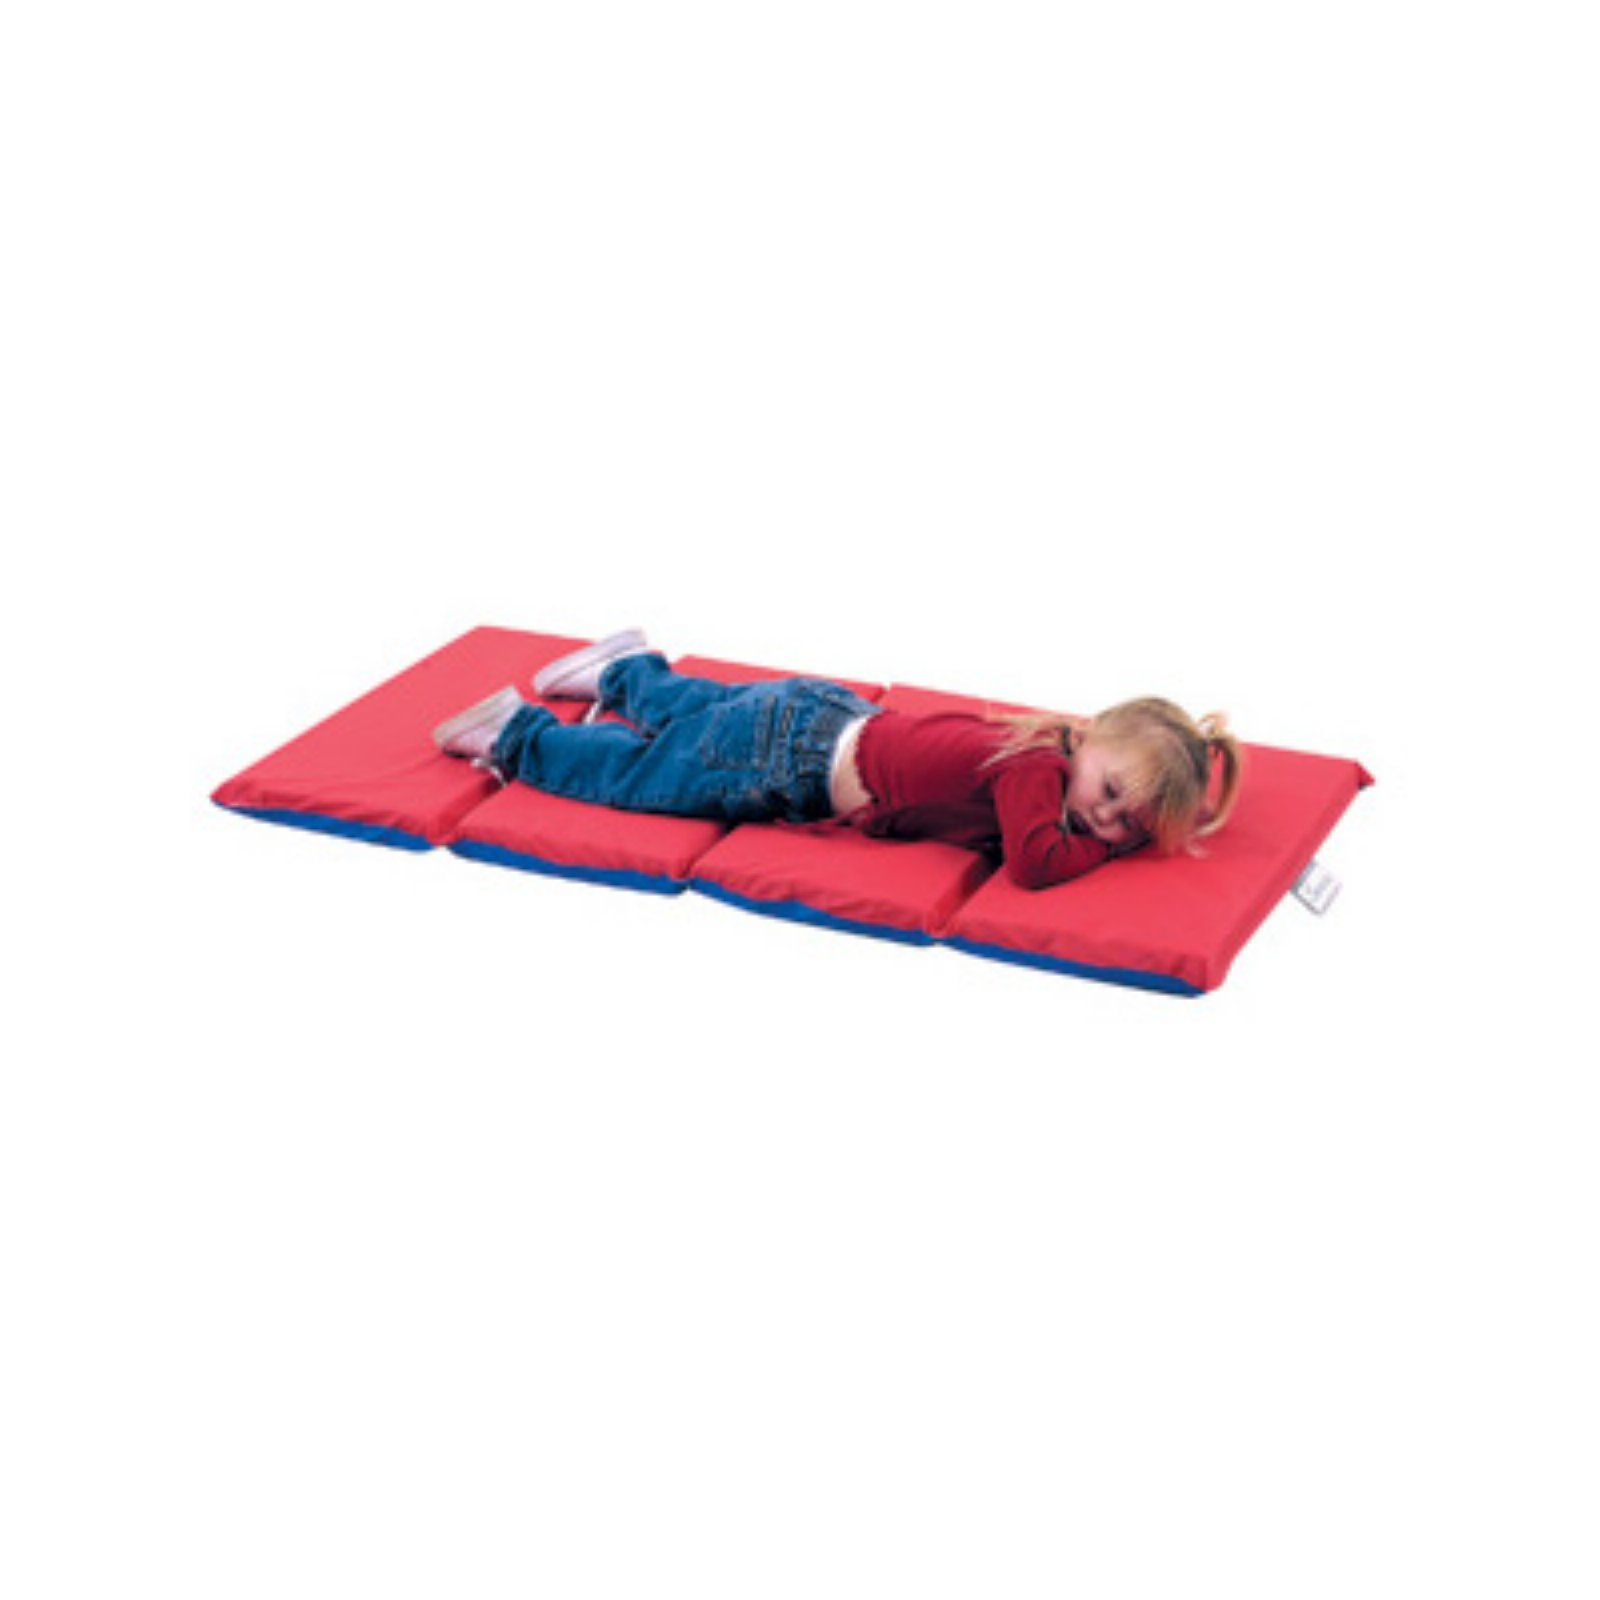 Children S Factory 4 Fold Rf Sealed Infection Control Mat Red Blue Nap Mat